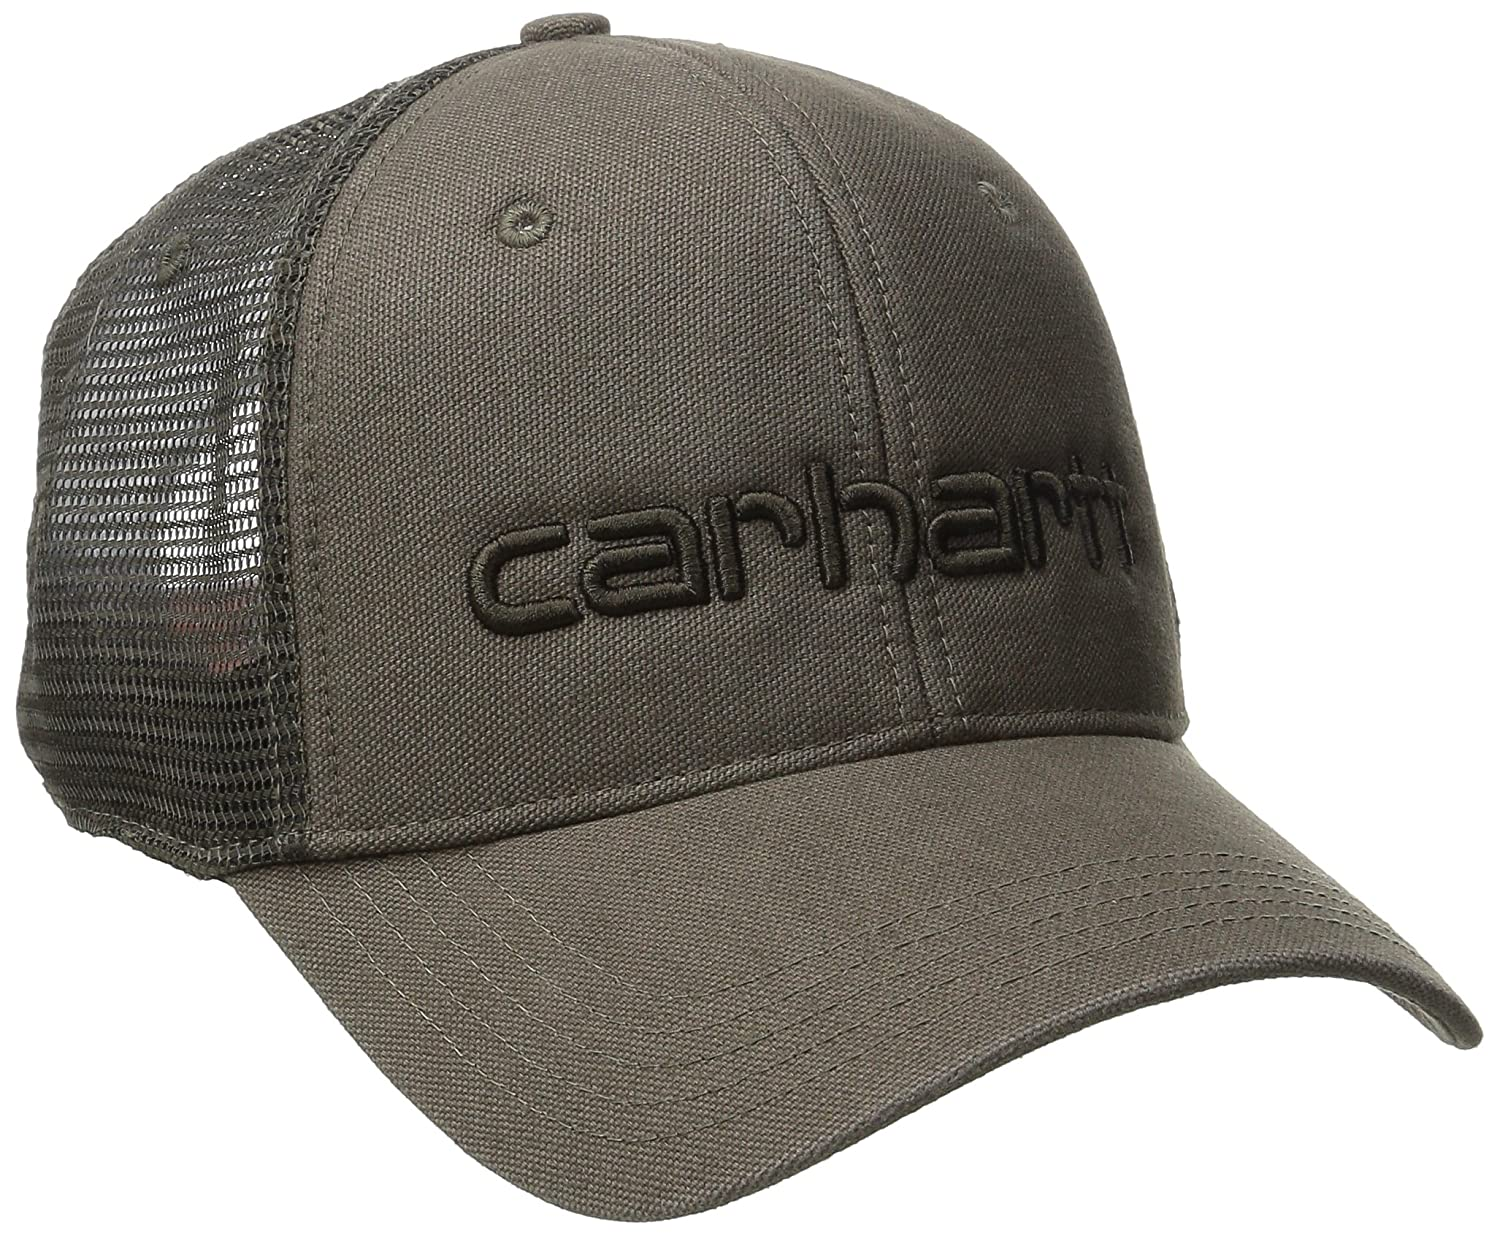 62bee1f04e3be0 Carhartt Men's Dunmore Cap at Amazon Men's Clothing store: